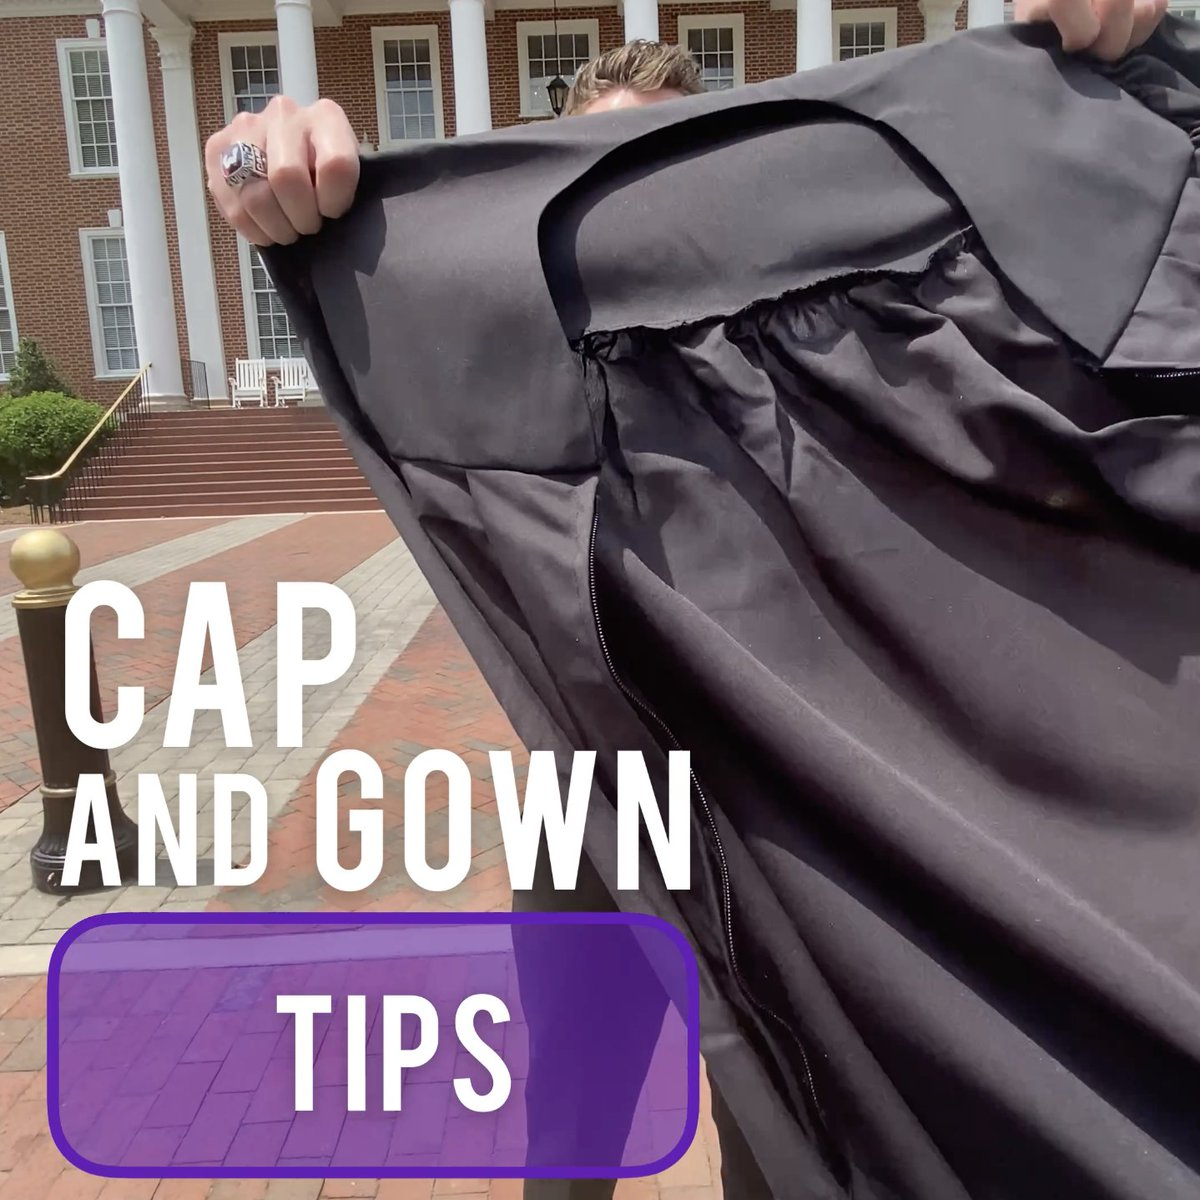 🎓 Want to look your best in that cap and gown, HPU grads⁉️ Check out this video featuring Sam Carr, '21! #HPUGrad2021 #HPUGrad2020